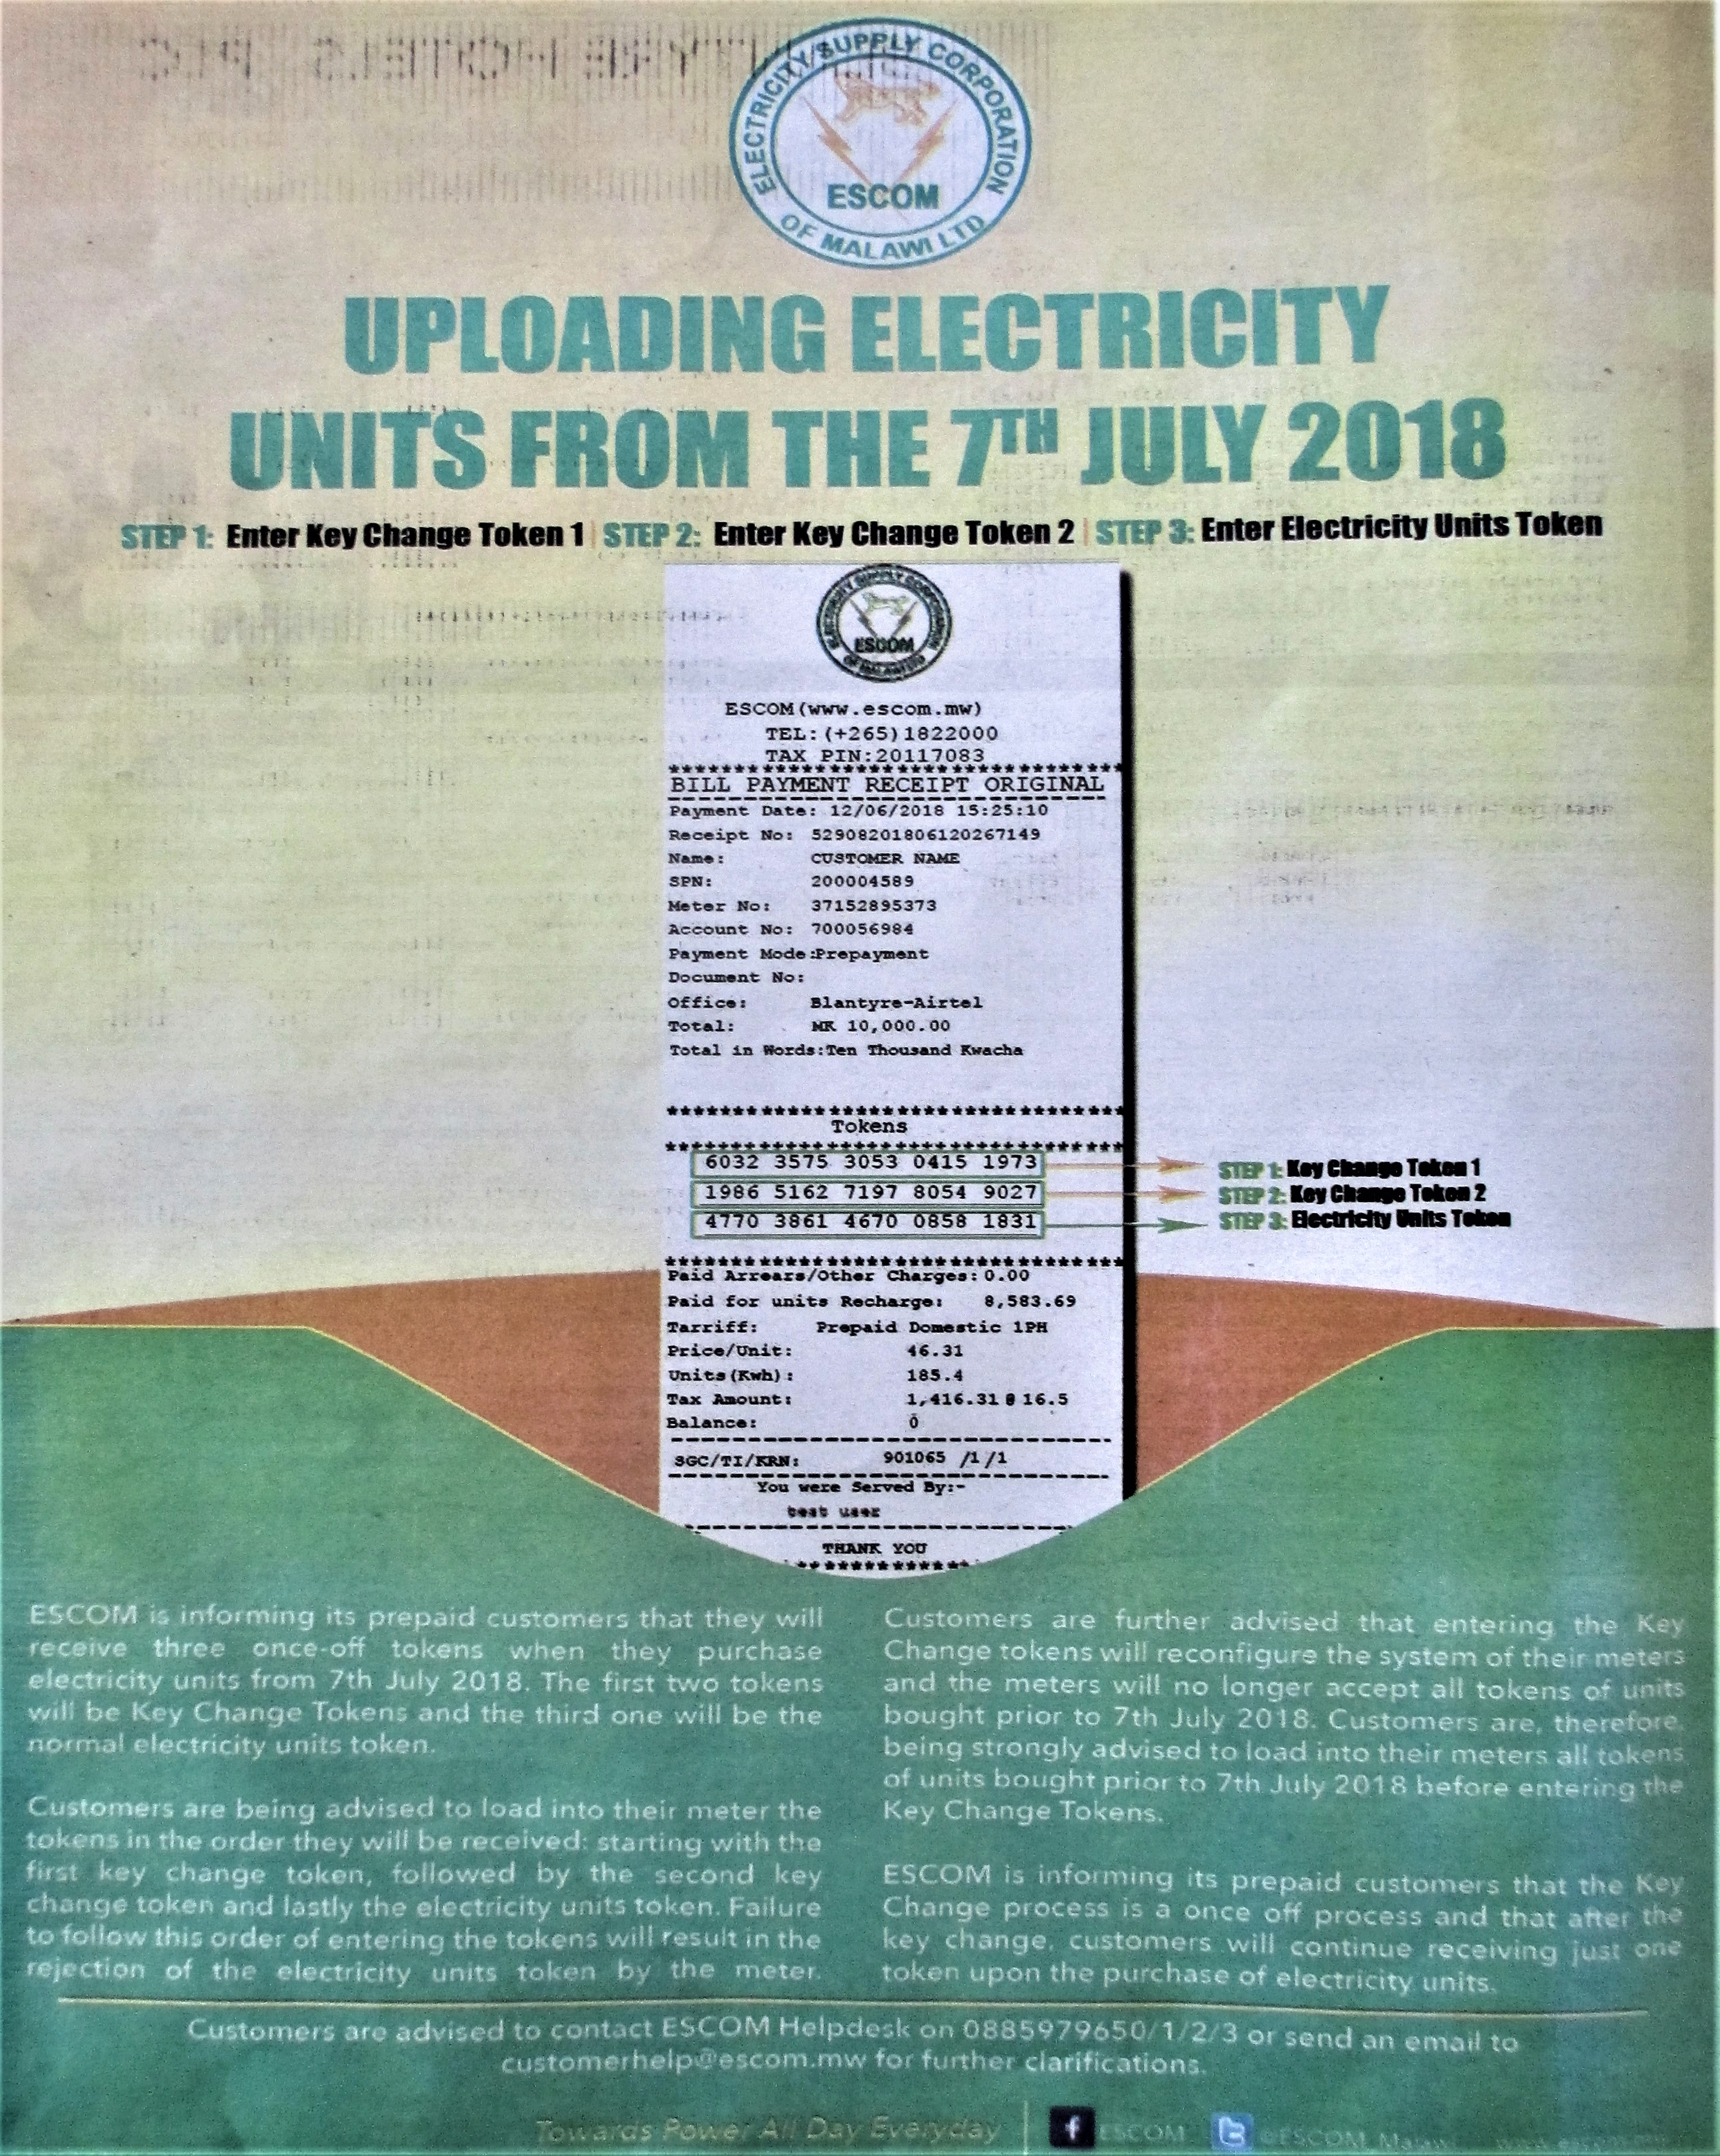 New Way of Uploading Electricity Units from 7th July 2018